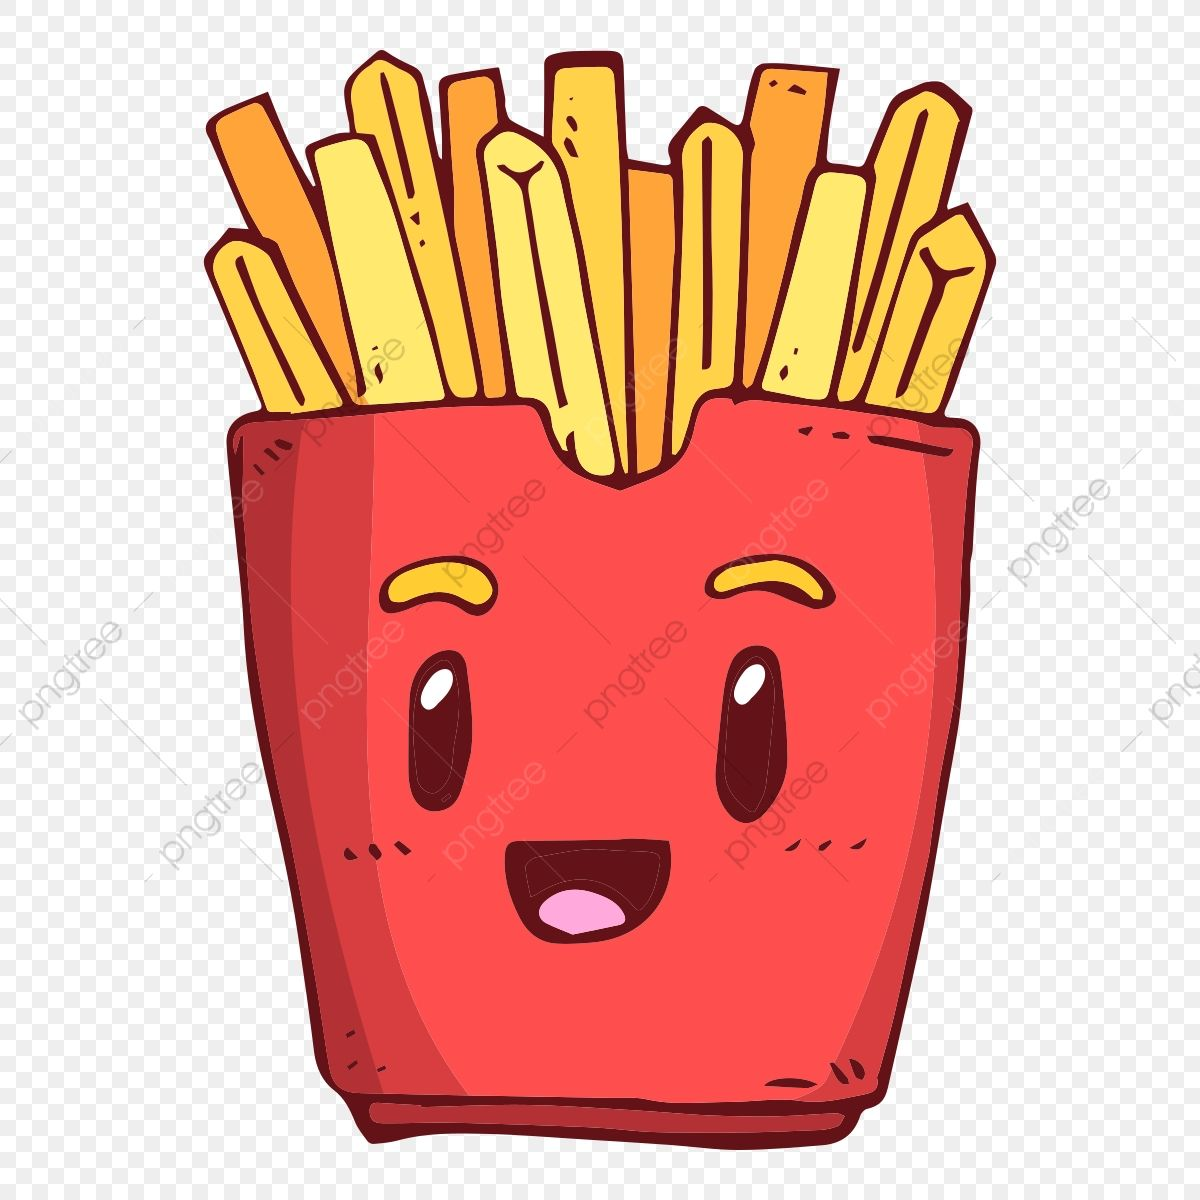 Smile Smiling Fries French Fries French Fries Smile Fries Clipart Cartoon Cartoon Fries Png And Vector With Transparent Background For Free Download French Fries Cartoon Food Artwork